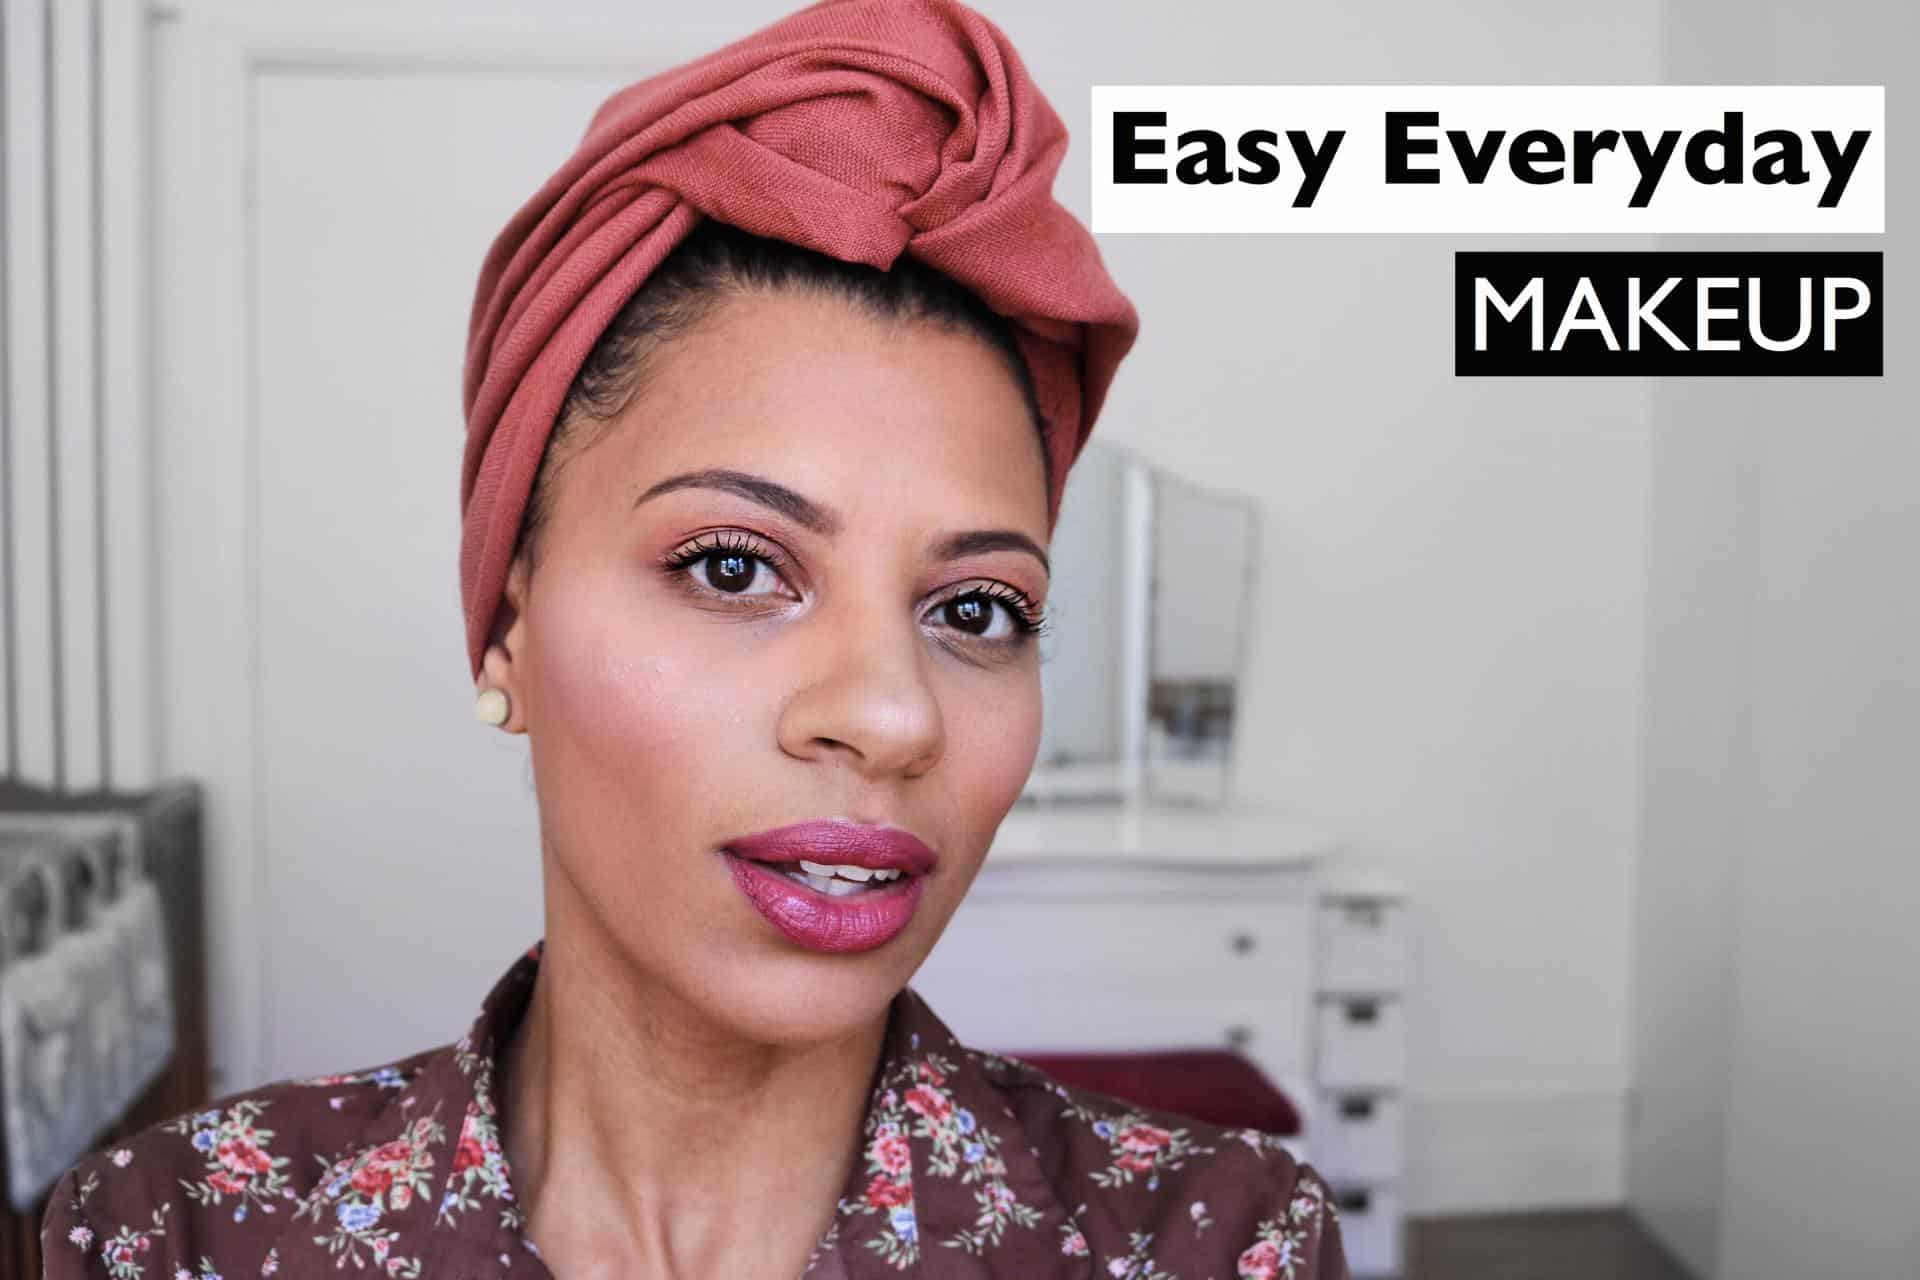 eleanor j'adore - easy everyday makeup tutorial